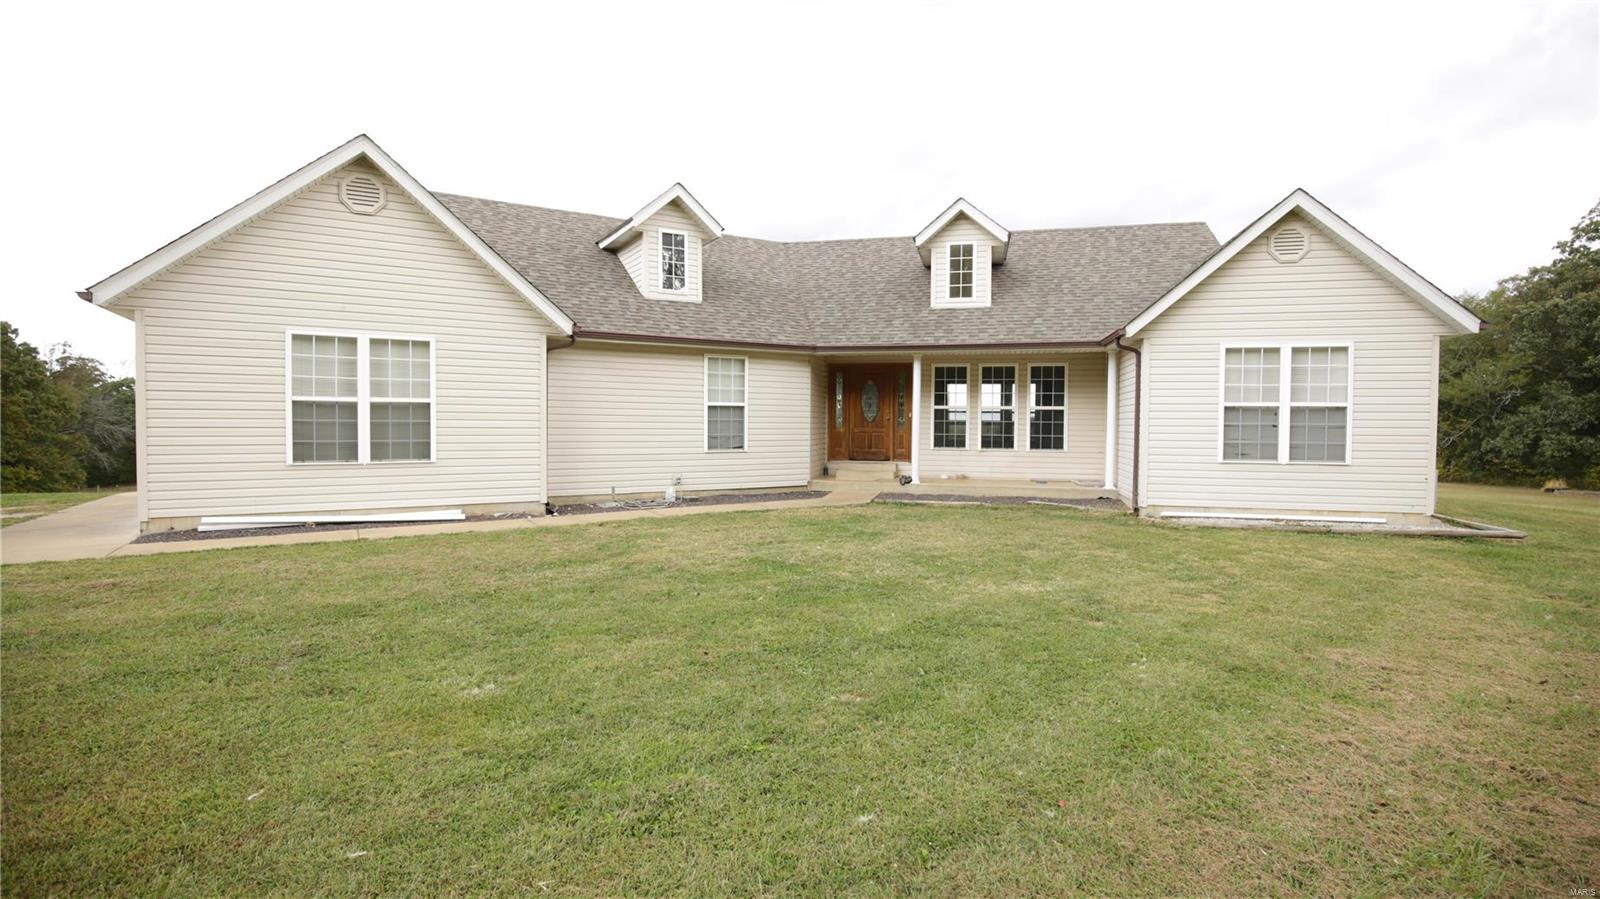 14592 W State Highway 47 Property Photo - Fletcher, MO real estate listing